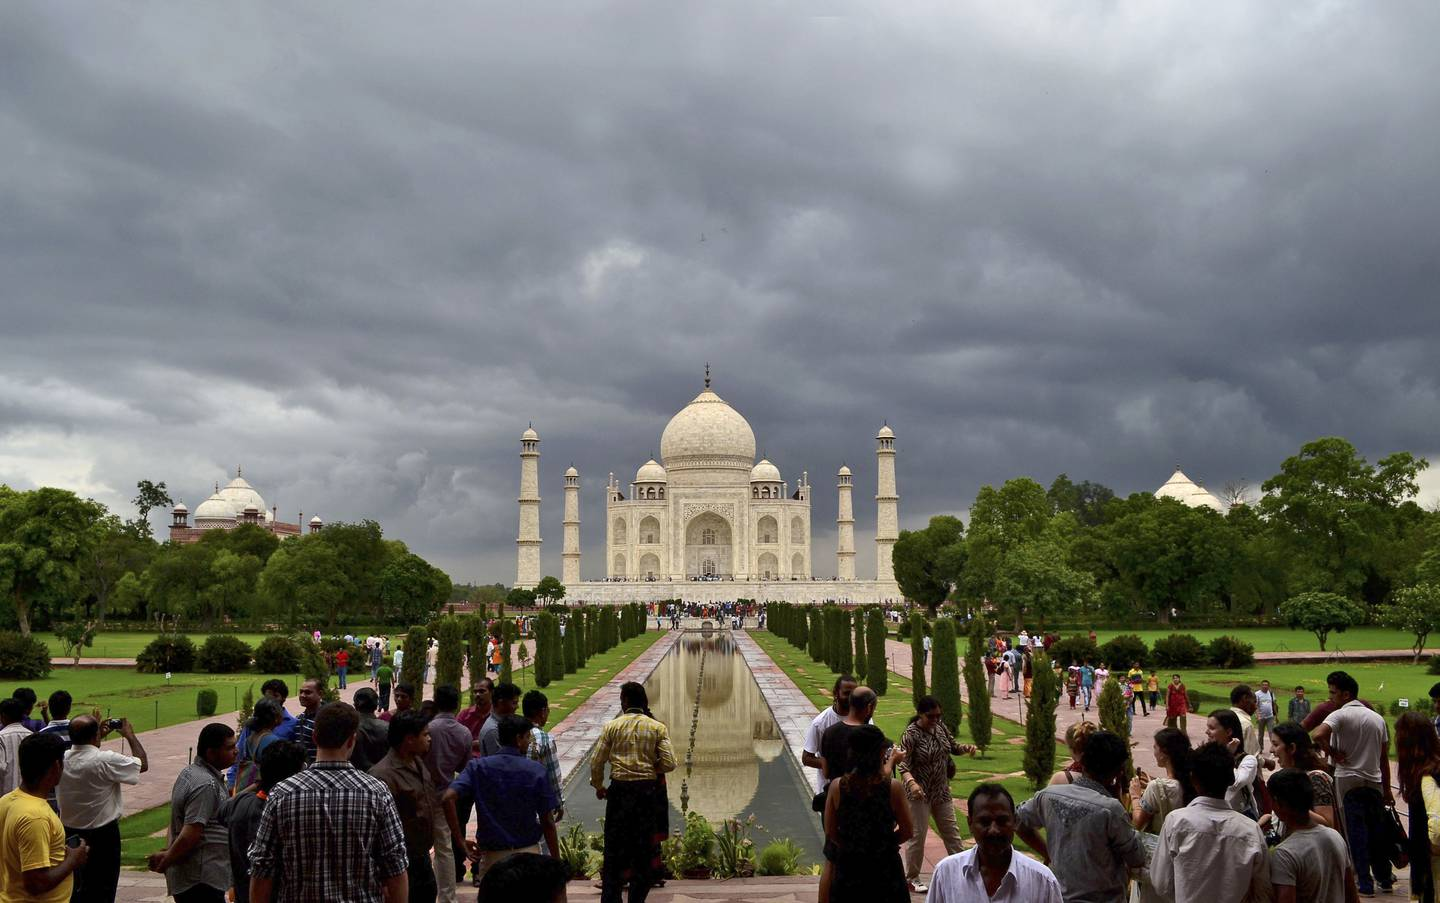 FILE- In this July 21, 2012 file photo, monsoon clouds hover over the Taj Mahal in Agra, India. India's famed monument of love, the white marble Taj Mahal, is finding itself at the heart of a political storm with some members of India's ruling Hindu right-wing party claiming that the mausoleum built by a Muslim emperor does not reflect Indian culture. (AP Photo/Pawan Sharma, File)